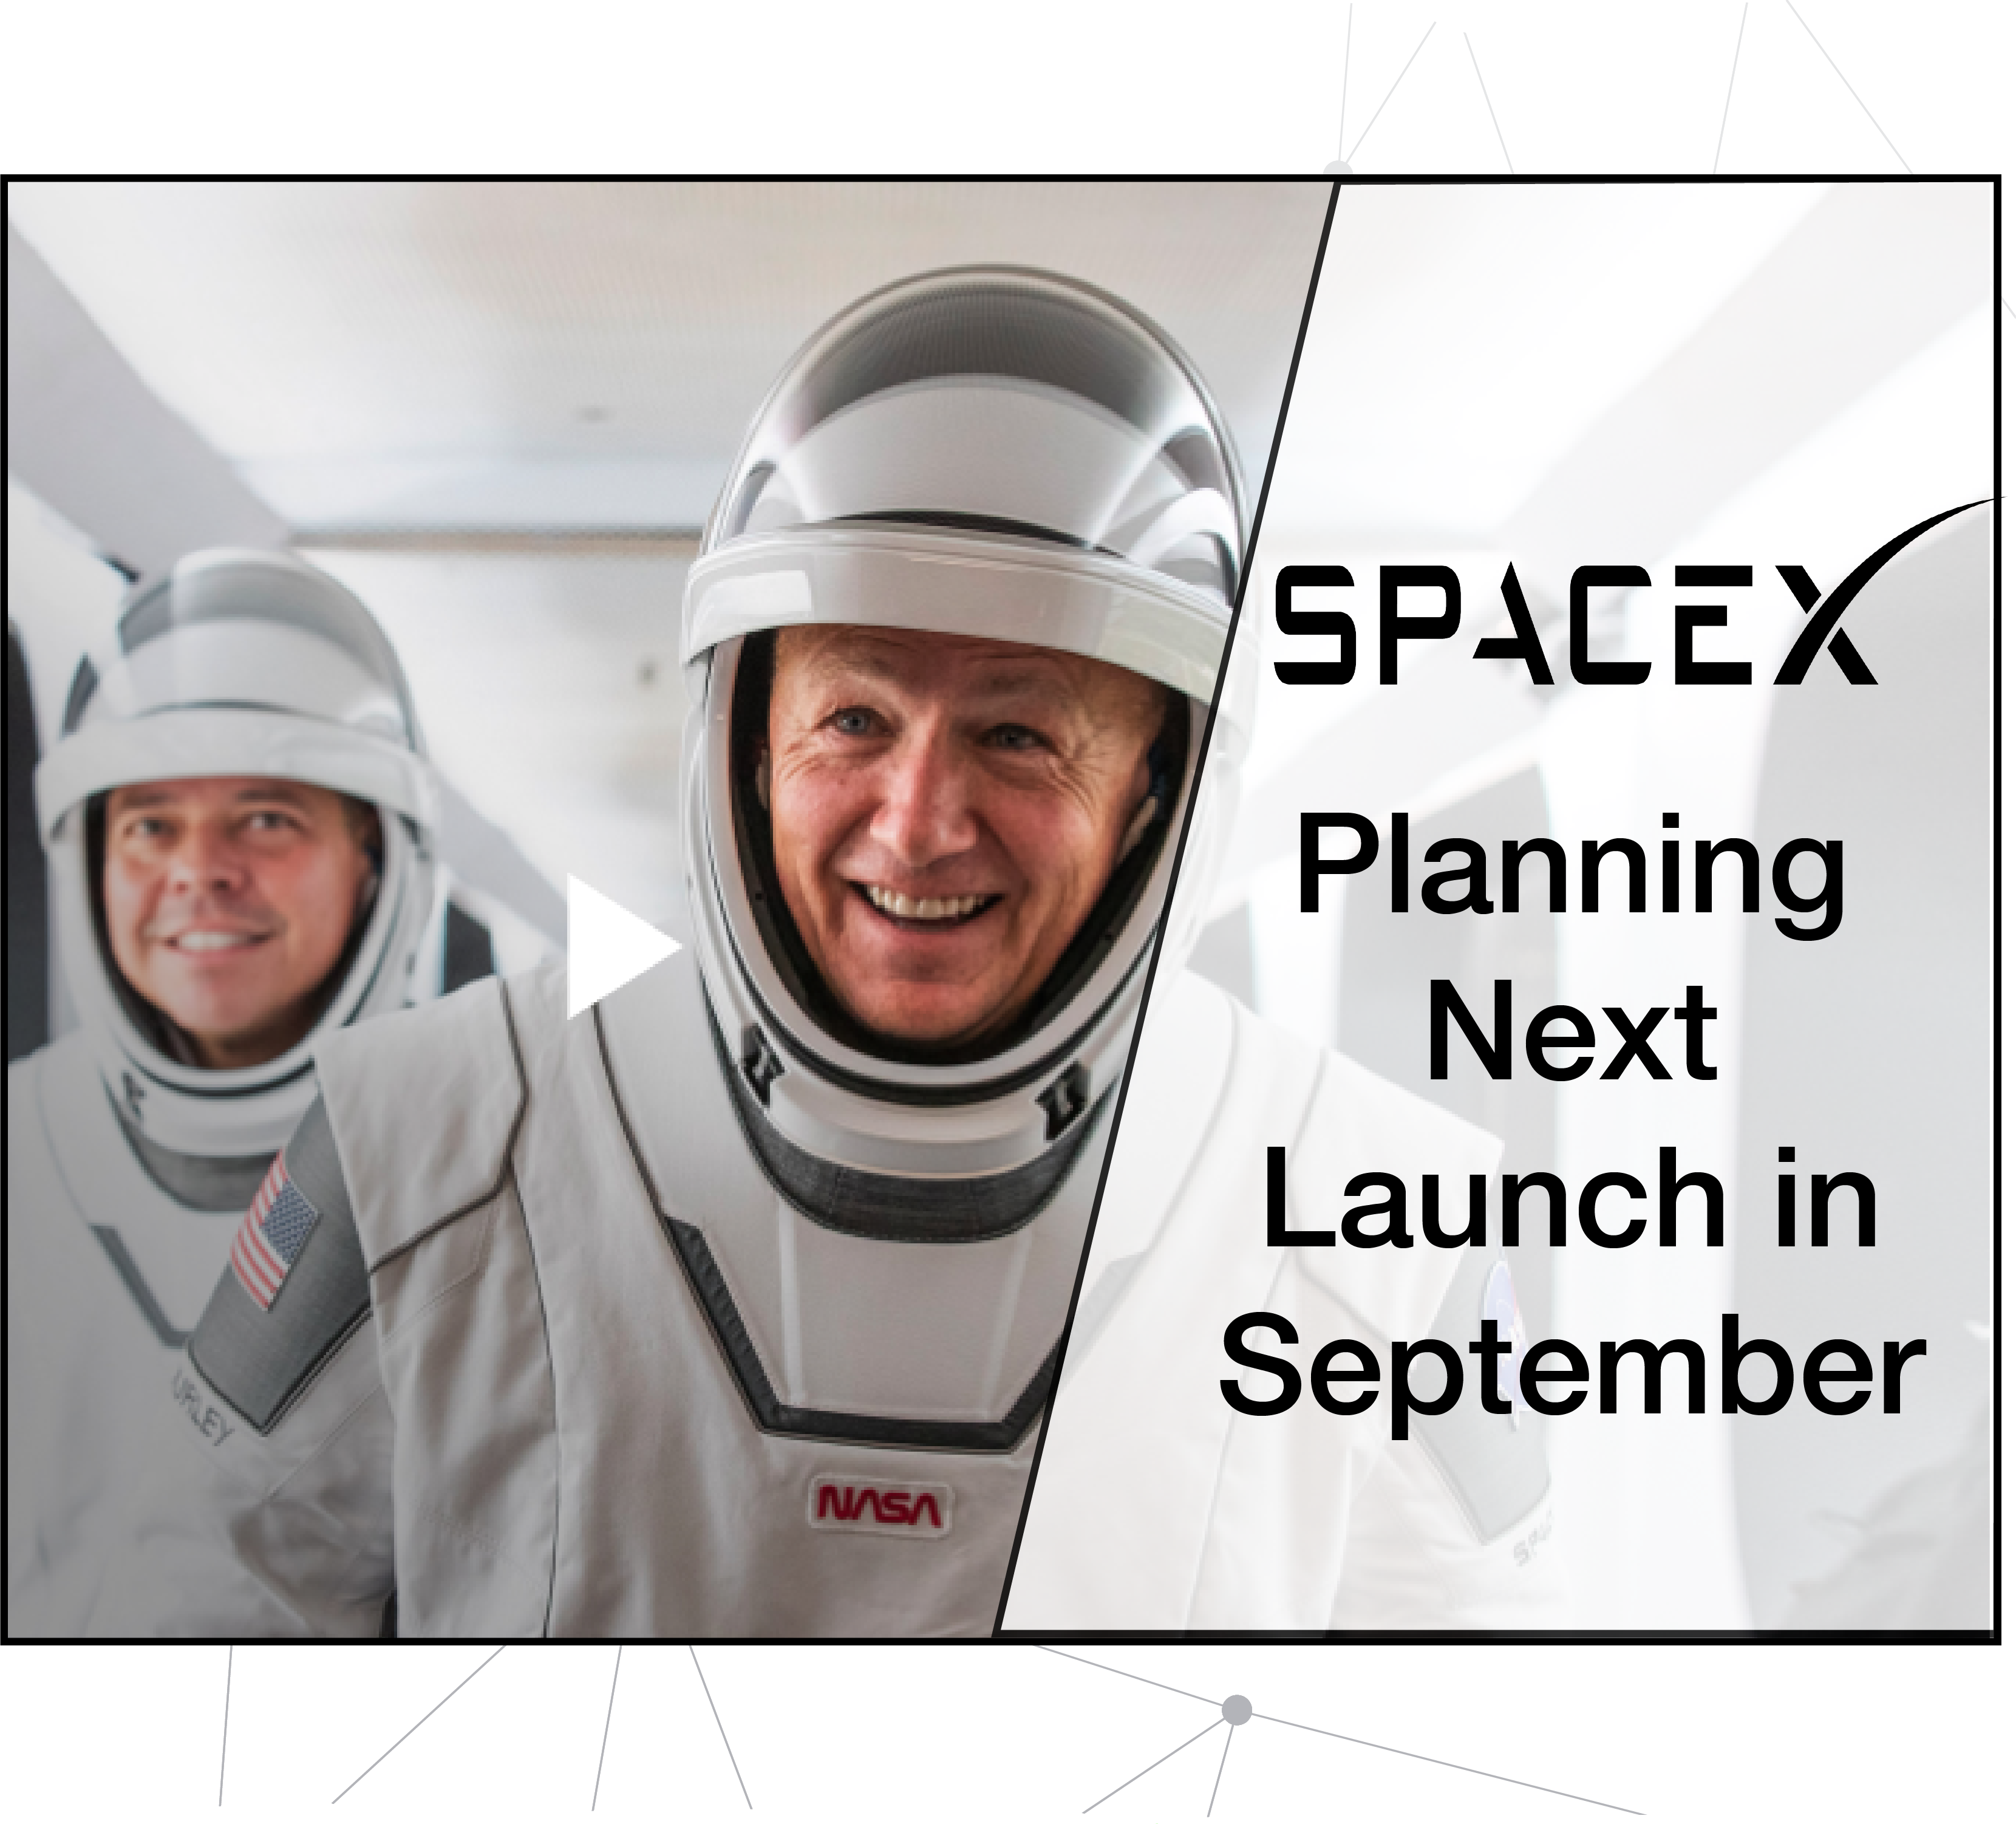 spacex-planning-next-launch-in-september